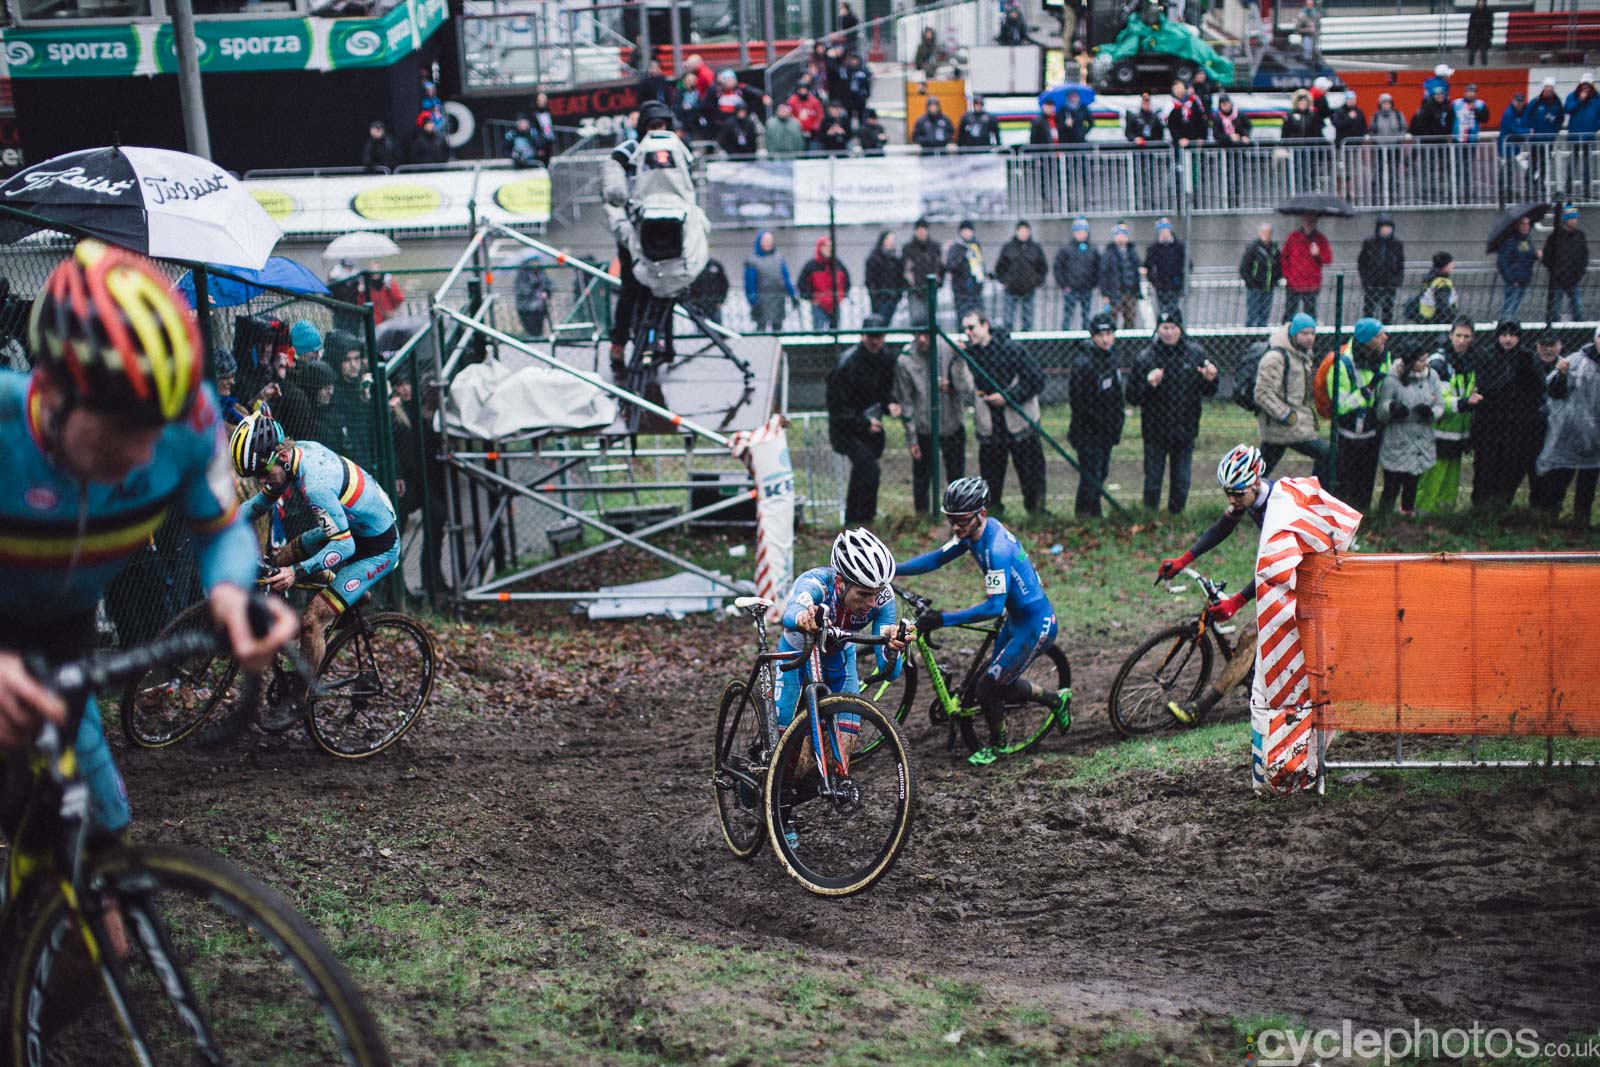 2016-cyclephotos-cyclocross-world-championships-zolder-113039-adam-toupalik